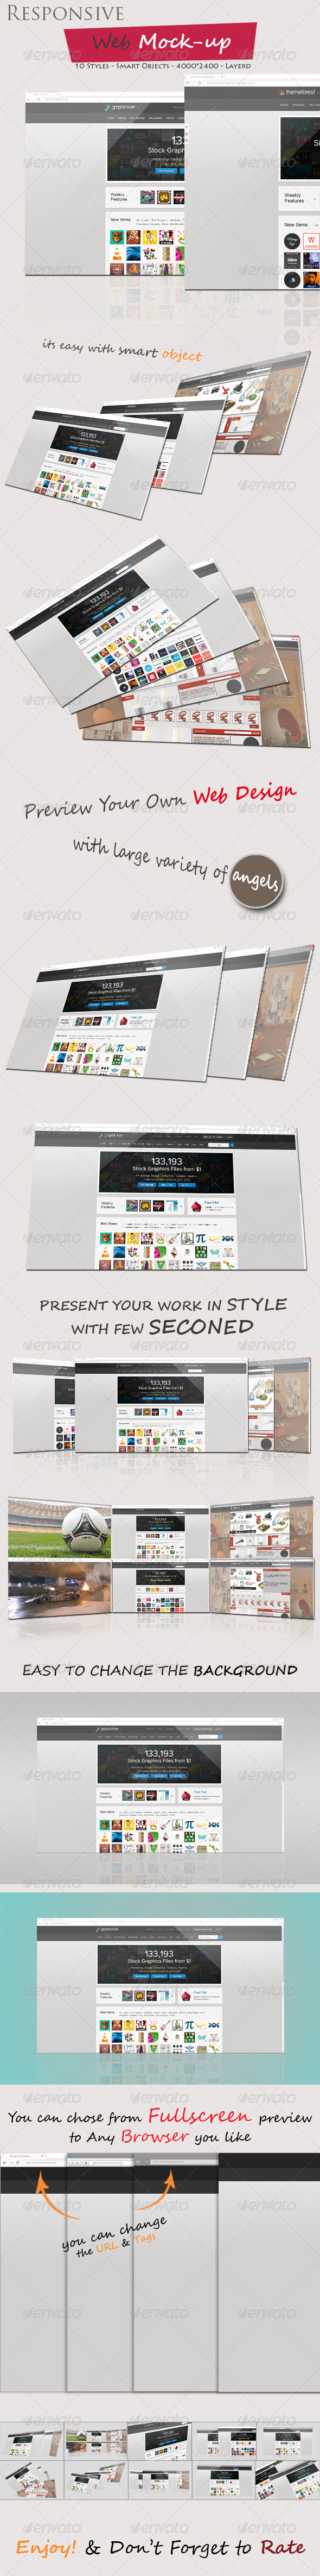 Responsive Web Mock-up - Displays Product Mock-Ups